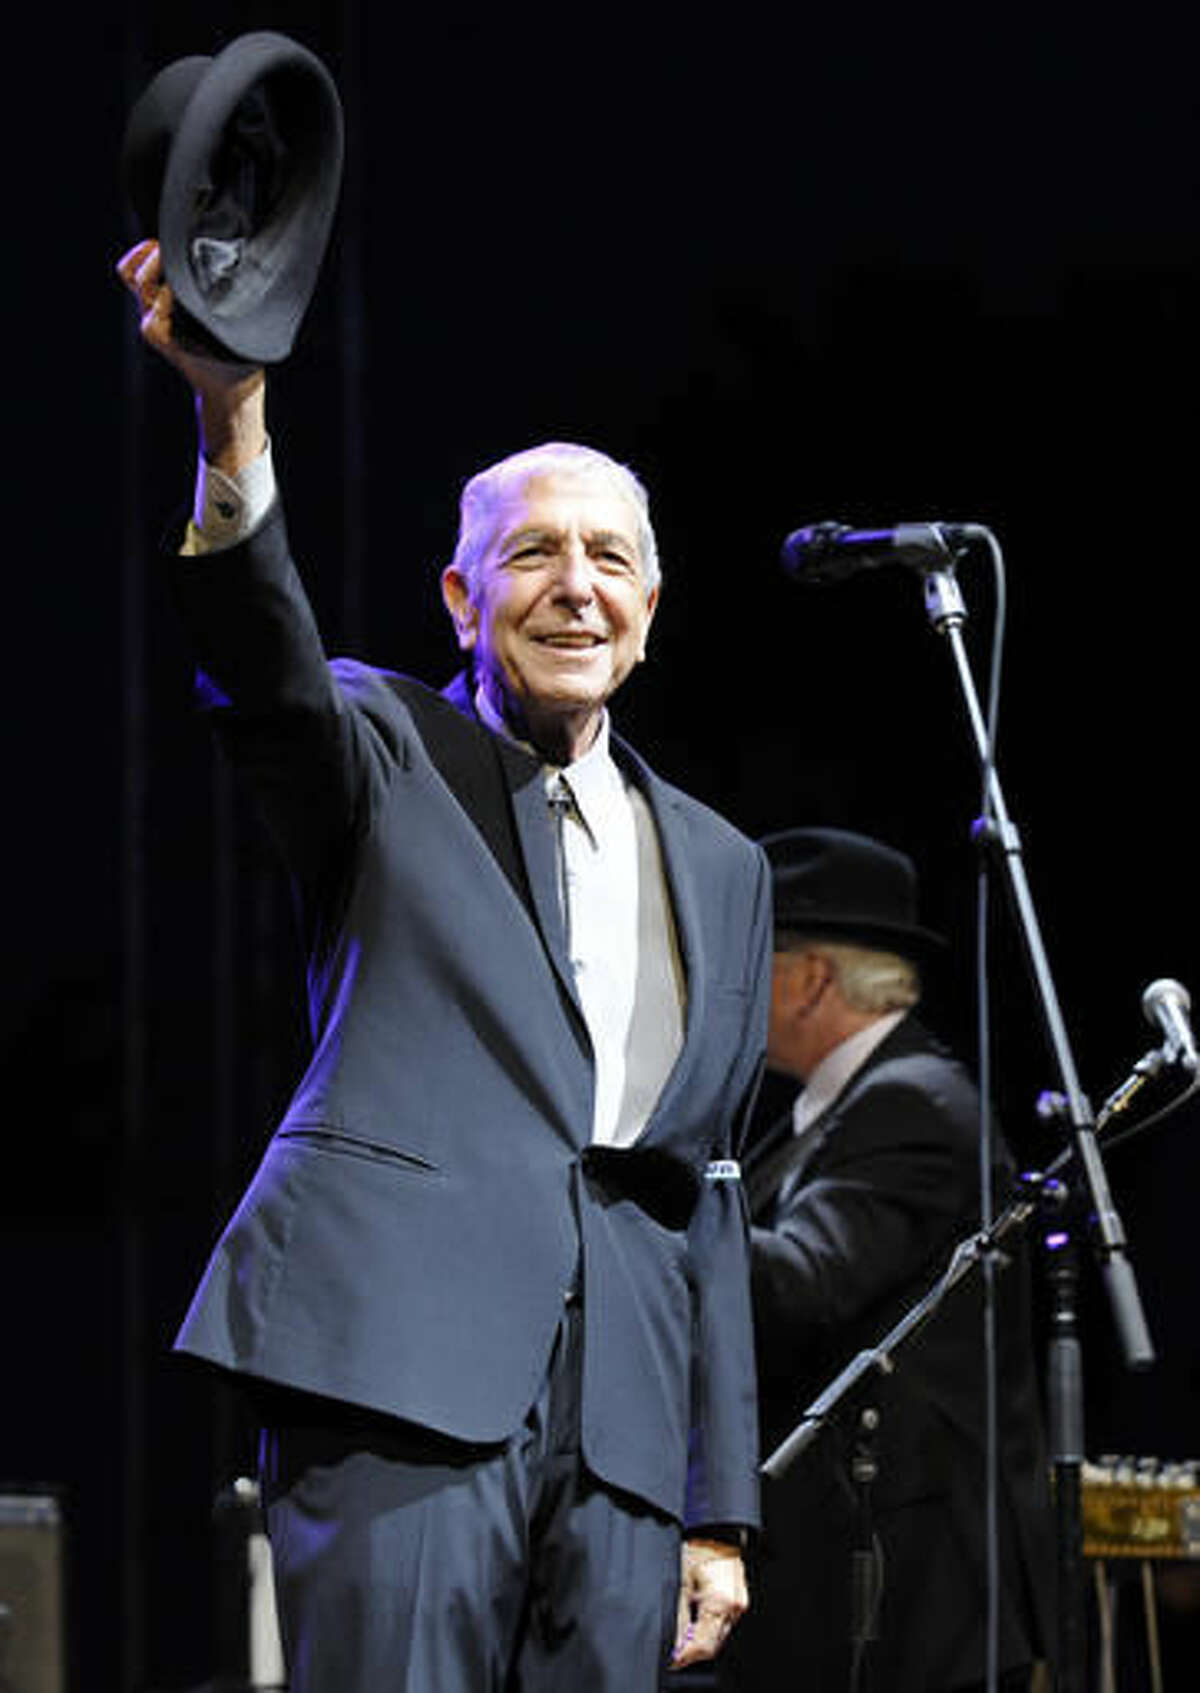 """CORRECTS DATE OF STATEMENT - FILE - In this April 17, 2009, file photo, Leonard Cohen salutes the crowd during his performance on the first day of the Coachella Valley Music & Arts Festival in Indio, Calif. Cohen, the gravelly-voiced Canadian singer-songwriter of hits like """"Hallelujah,"""" """"Suzanne"""" and """"Bird on a Wire,"""" has died, his management said in a statement Thursday, Nov. 10, 2016. He was 82. (AP Photo/Chris Pizzello)"""